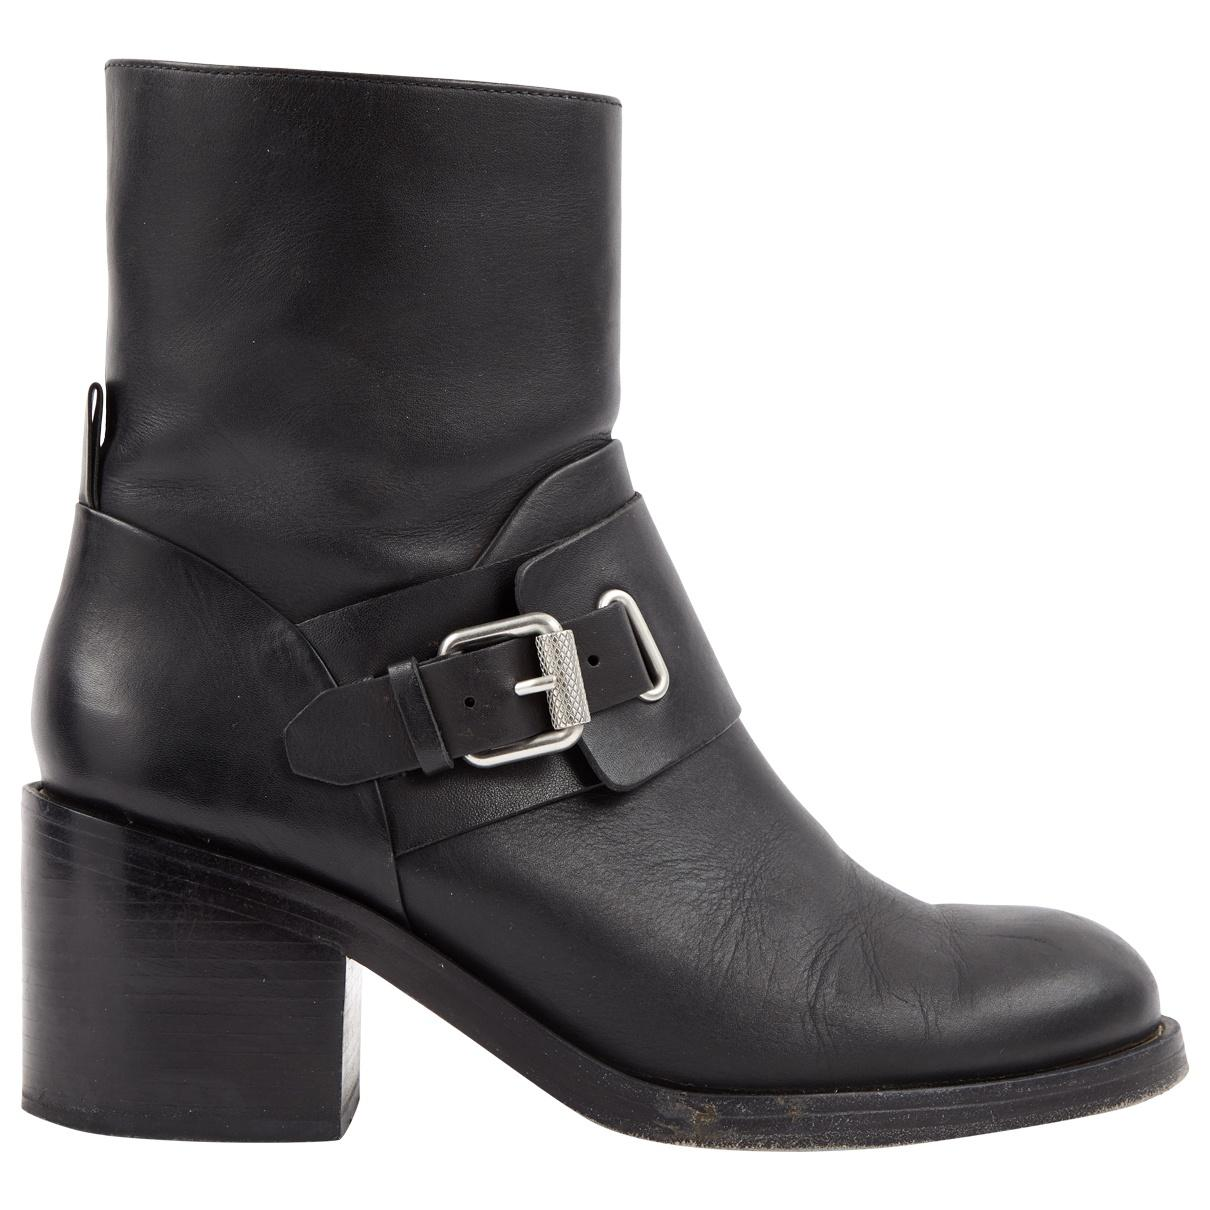 Pre-owned - Leather biker boots Allsaints Buy Cheap Get To Buy Discount Manchester Free Shipping Best Place TSoasXo